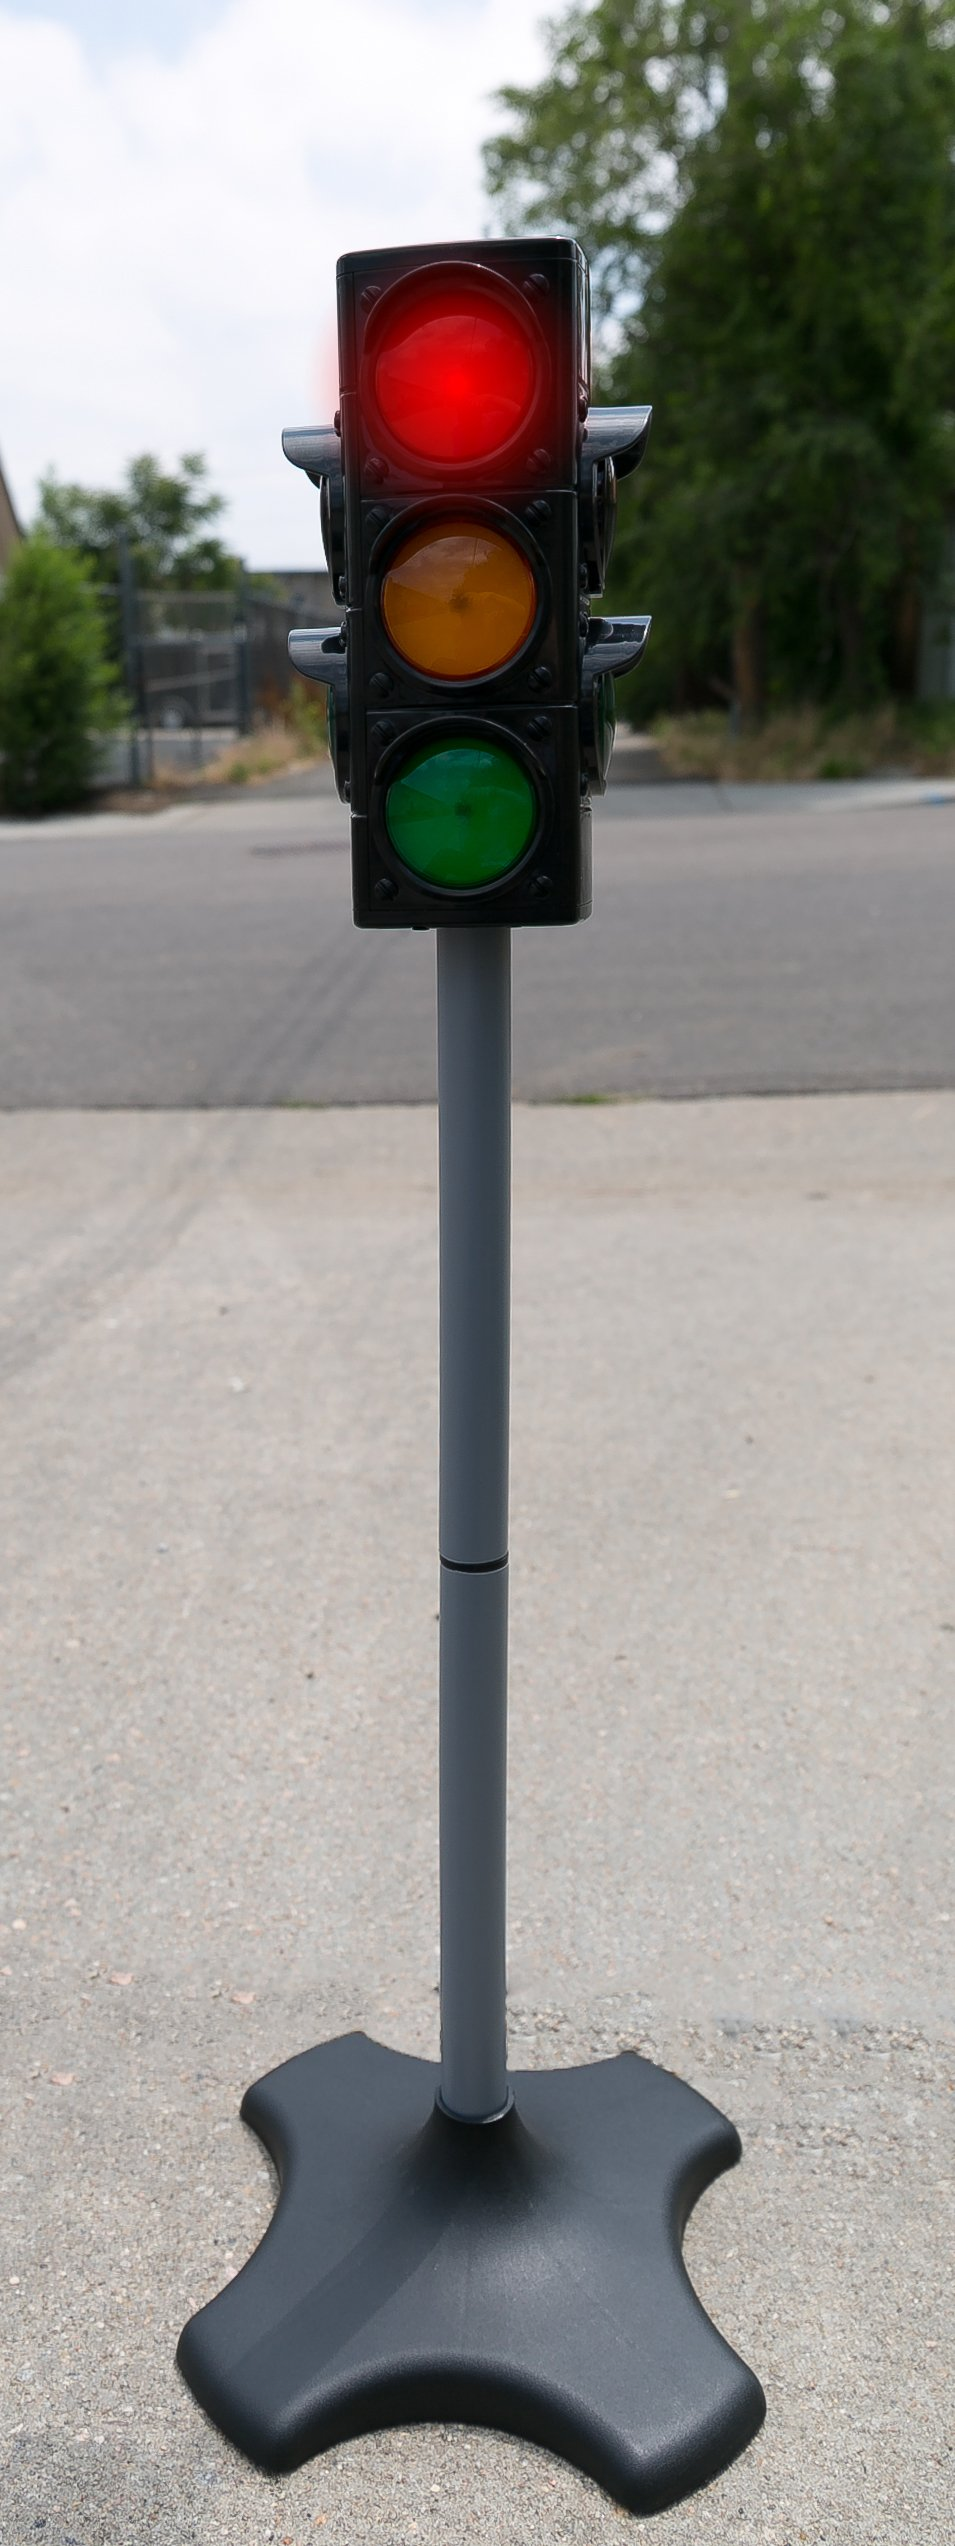 MMP Living Toy Traffic & Crosswalk Signal with Light & Sound - 4 Sided, Over 2 feet Tall by MMP Living (Image #7)